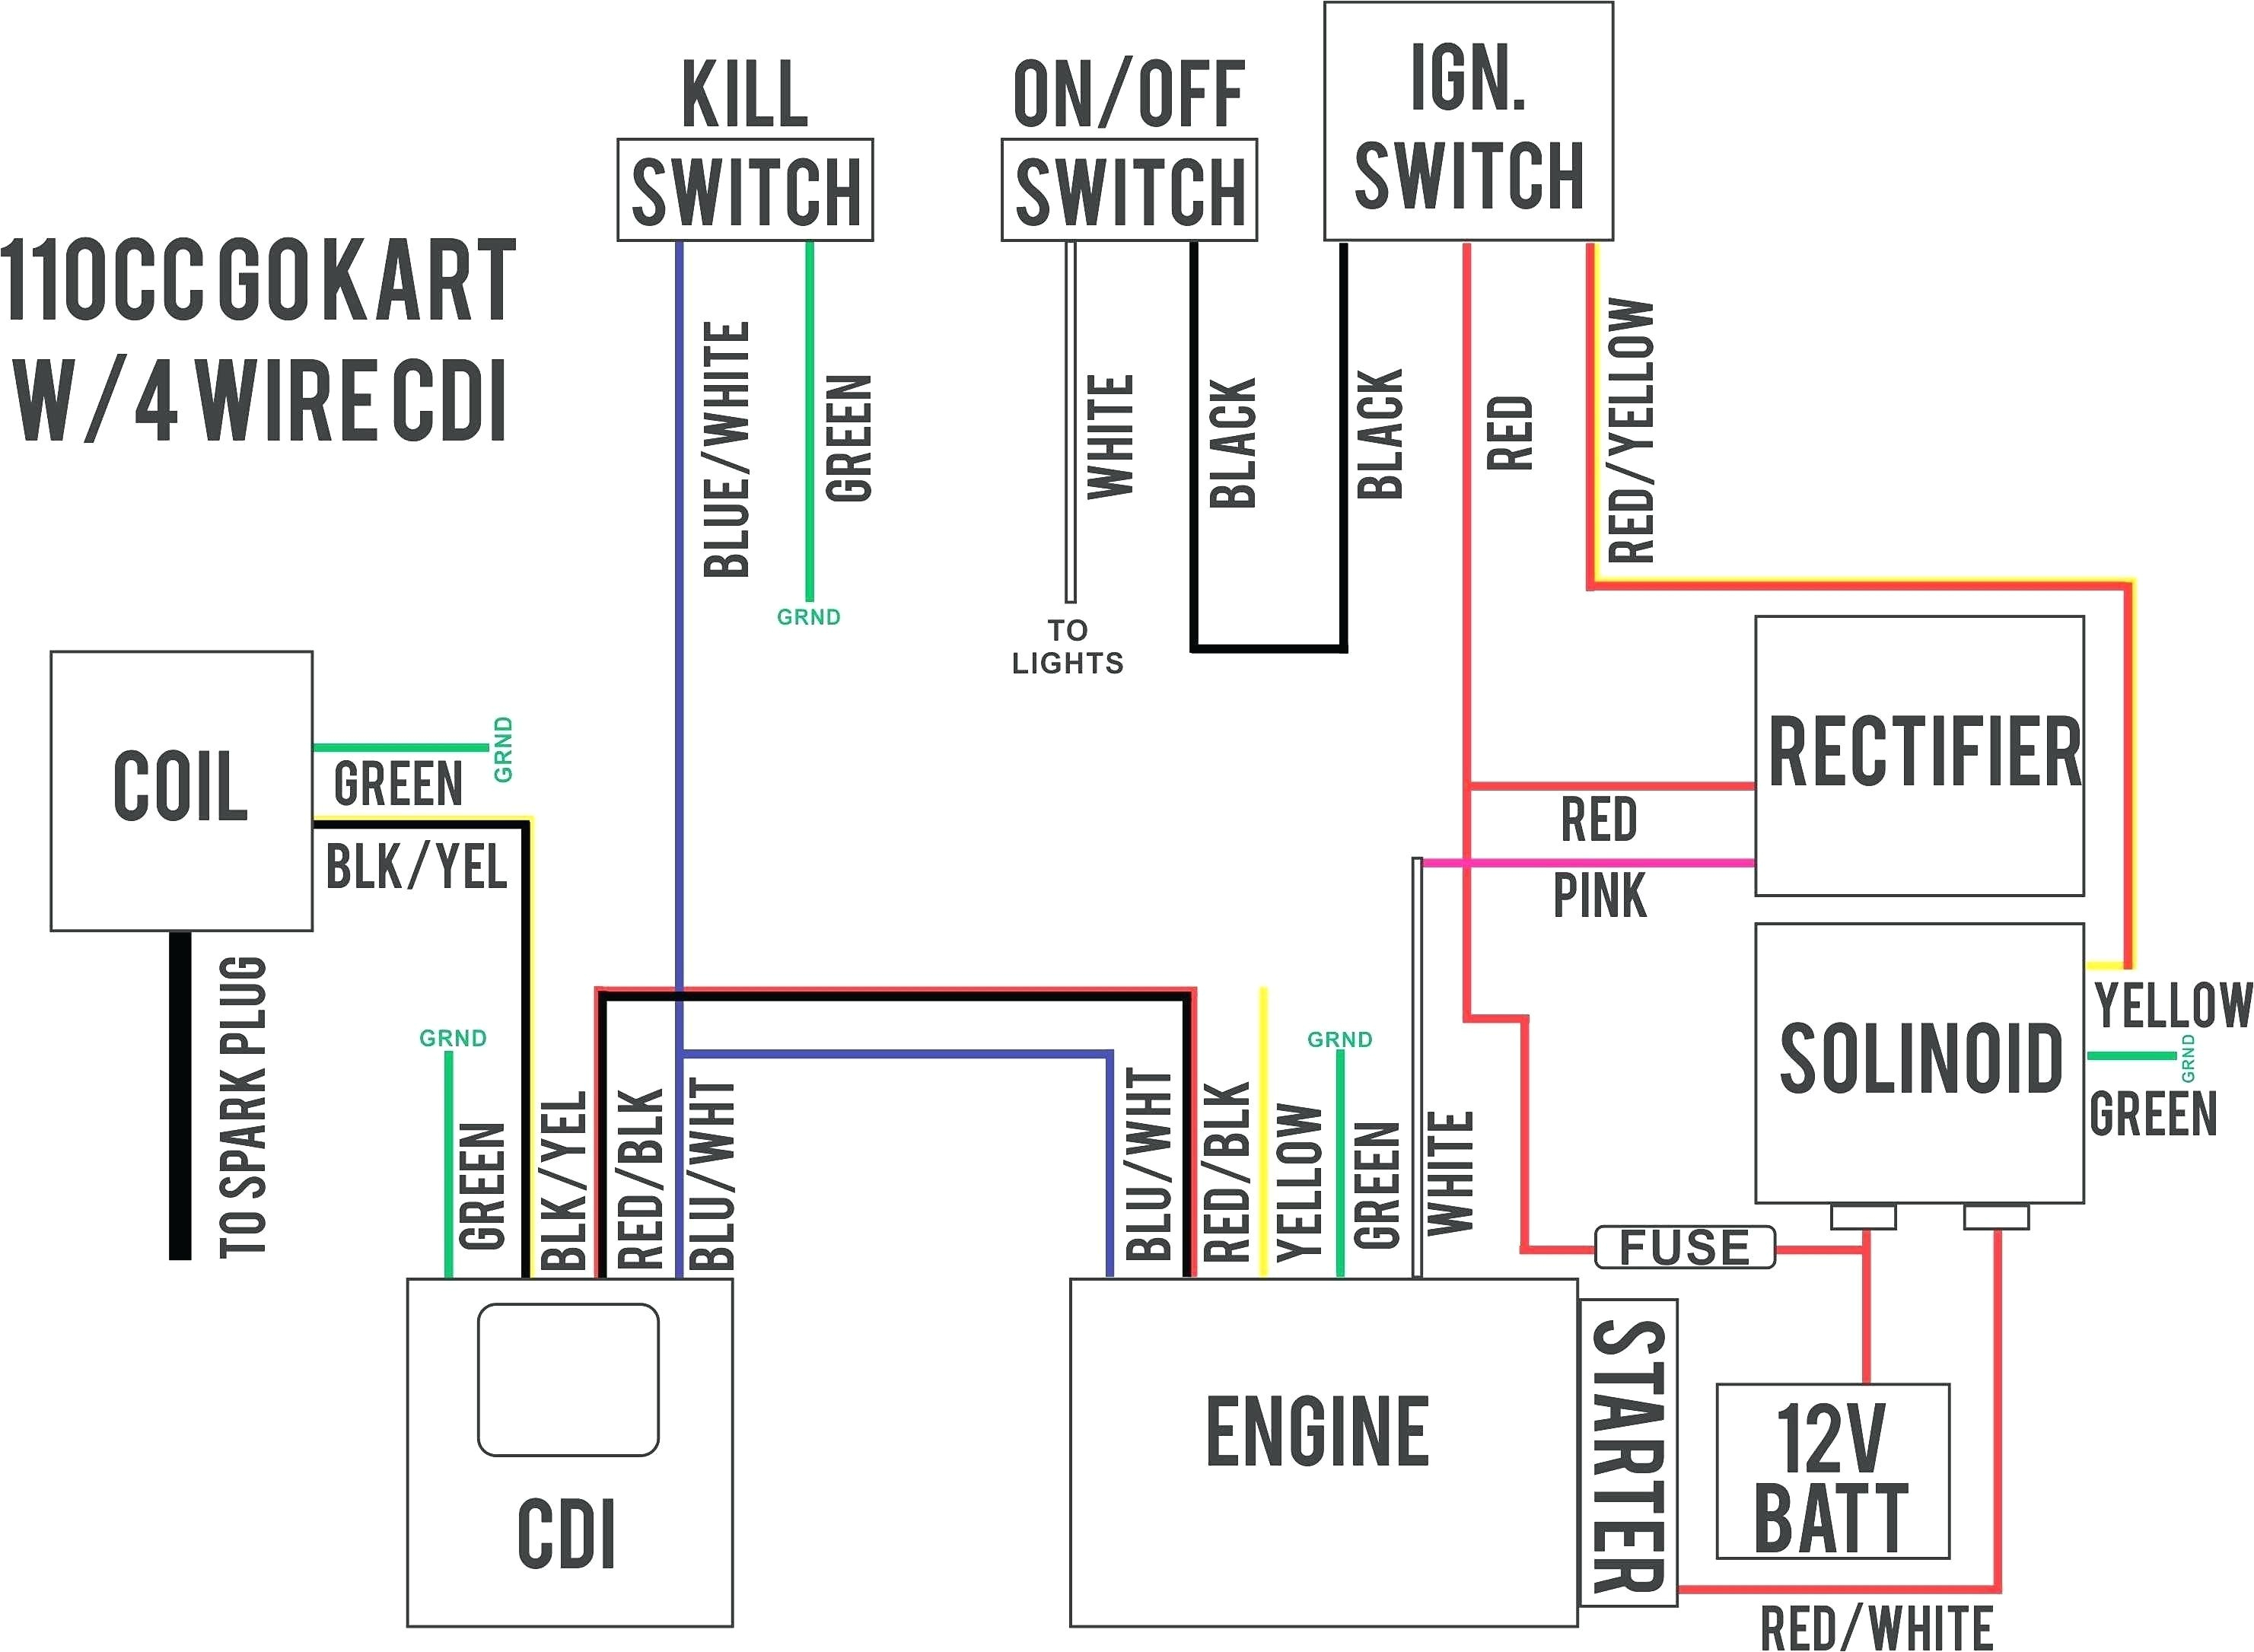 changeover switch fan coil wiring diagram wiring diagram 102326d1161533666tfuseboxdiagram300se1991mercfusecleanjpg